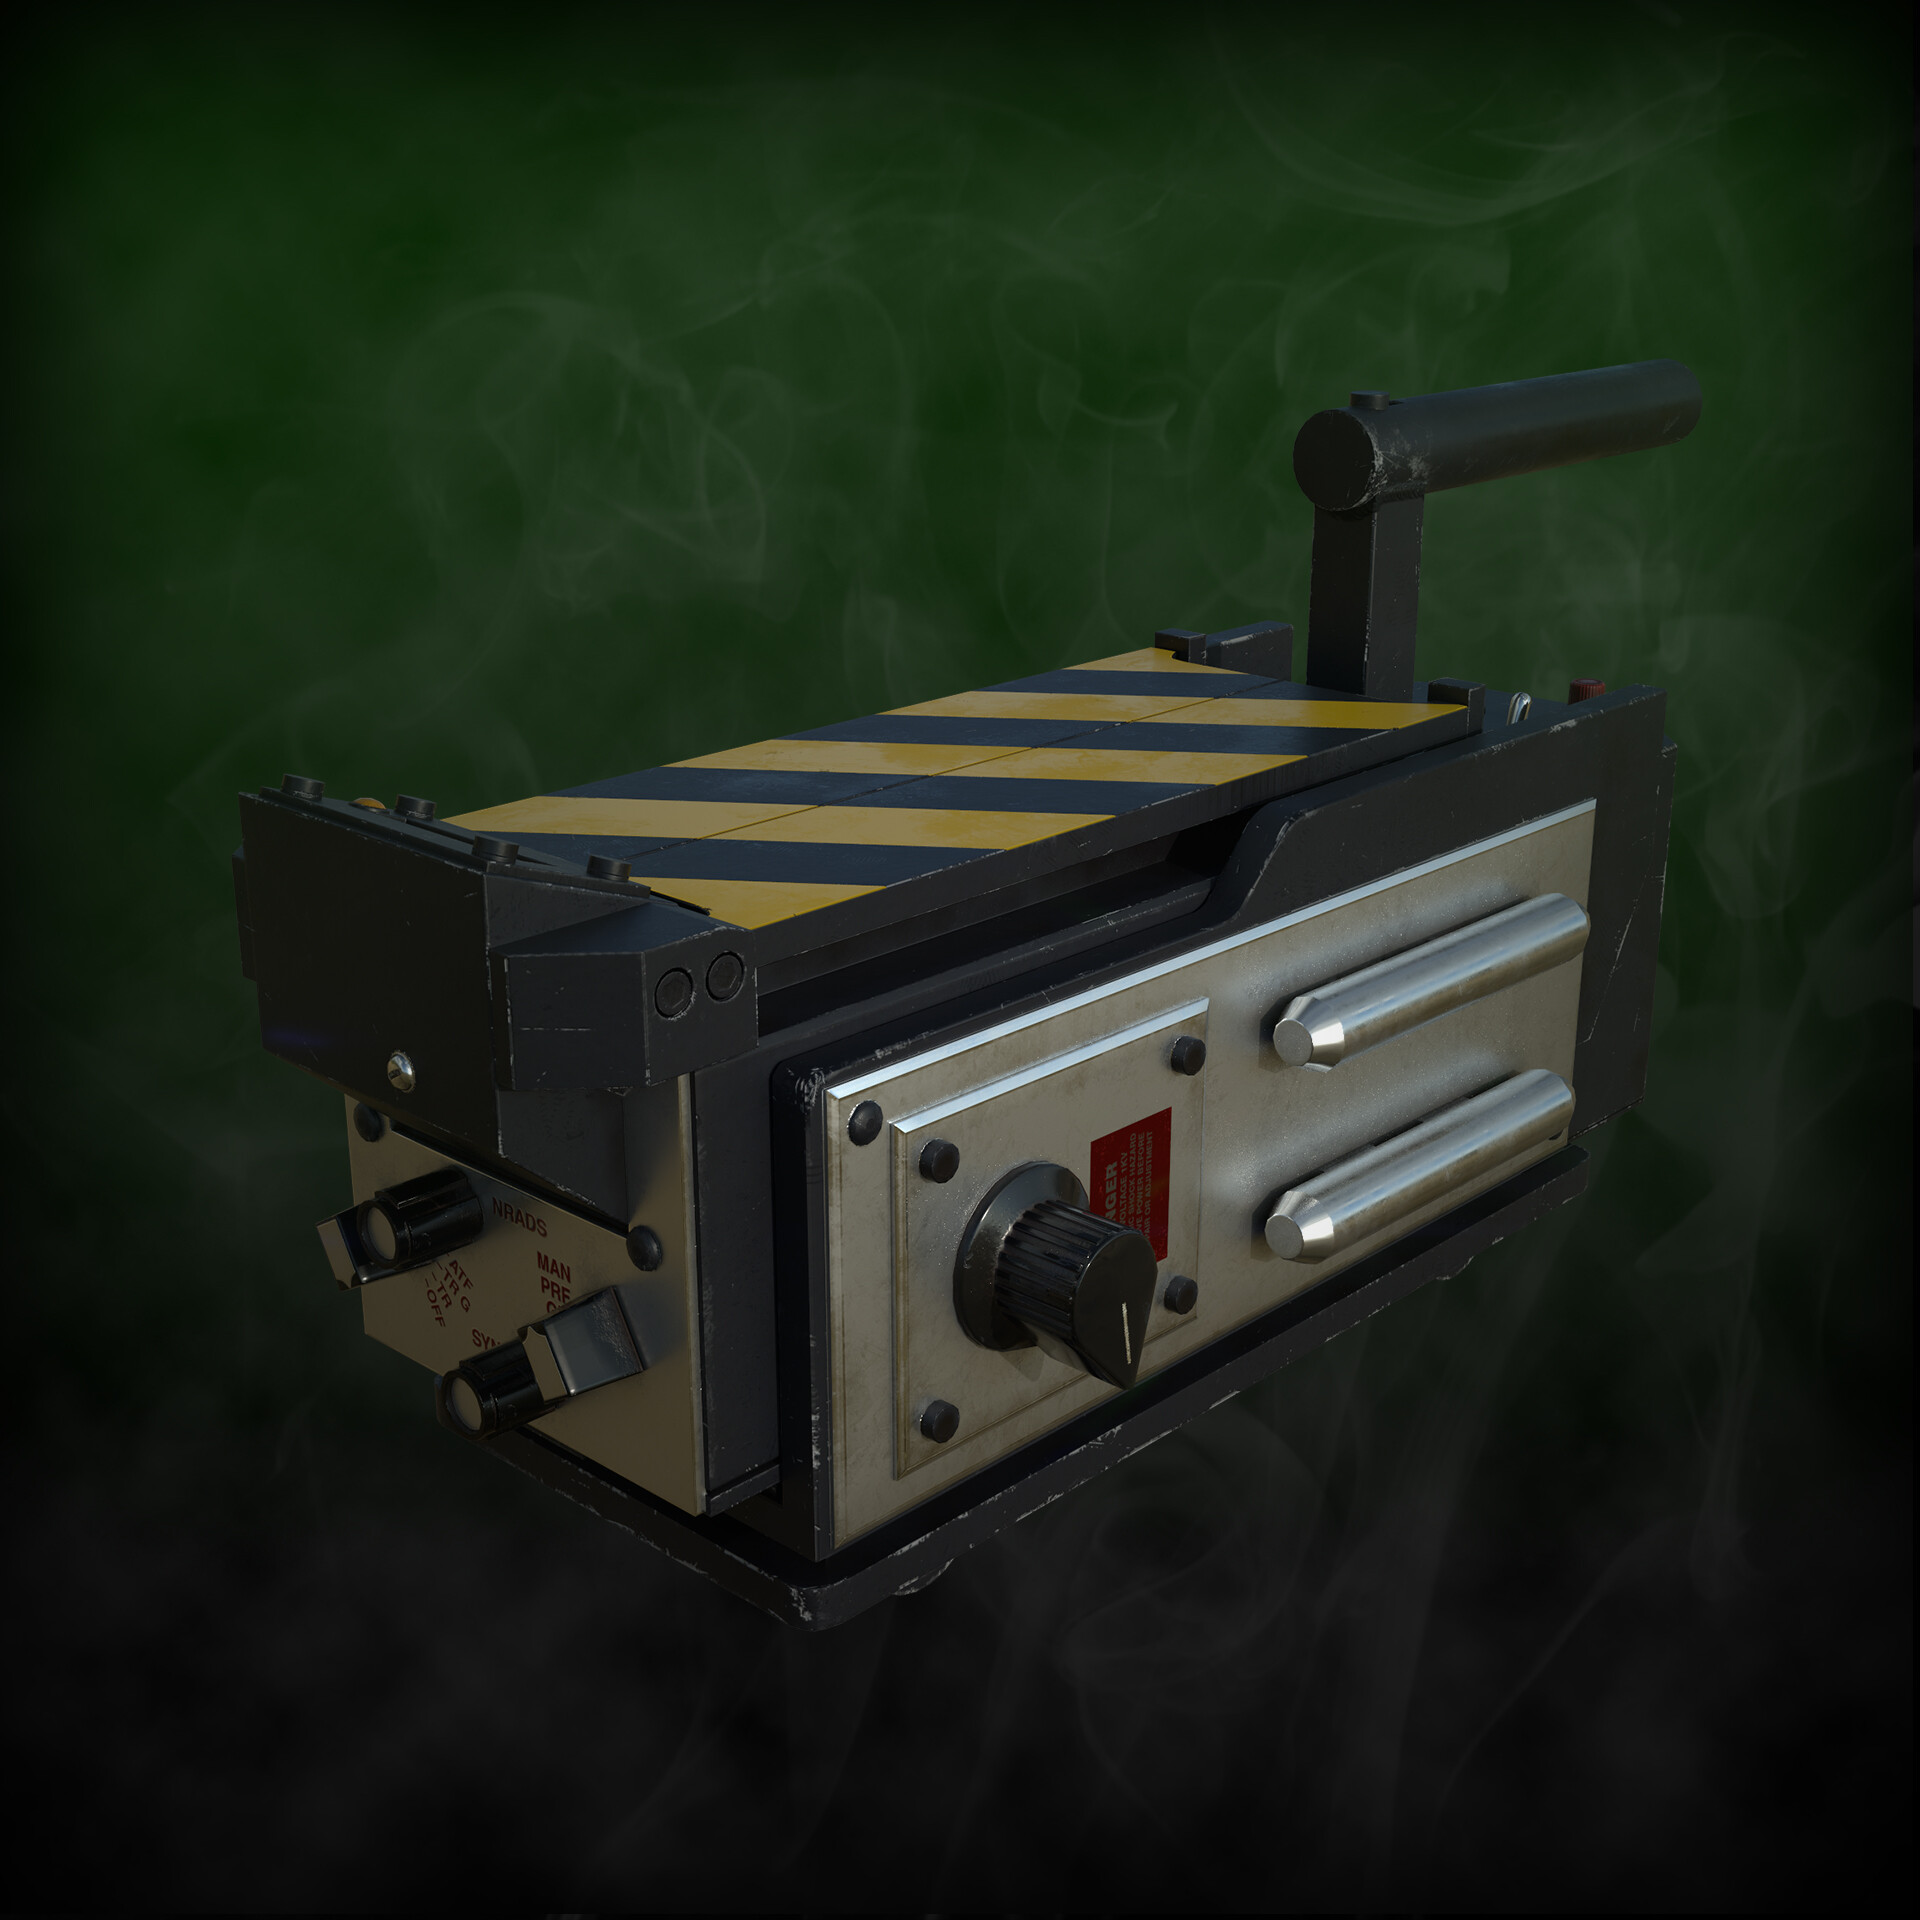 Thomas marrone ghostbusters trap combined 2019 07 14 01